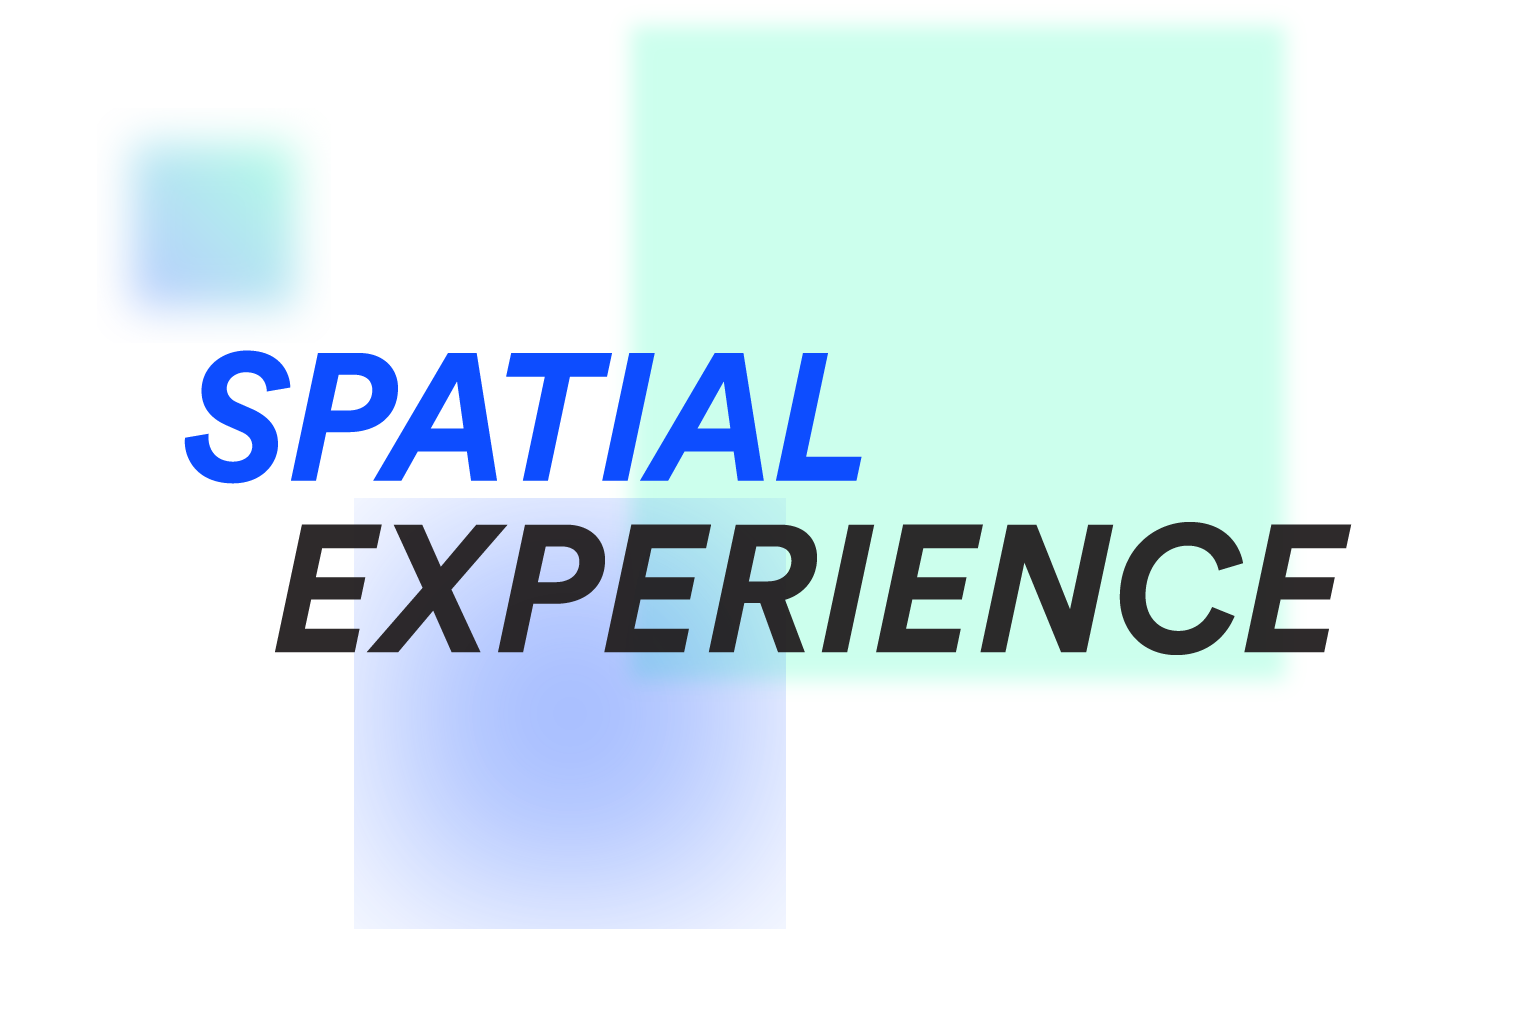 Digital Estate powered by Spatial Experience banner